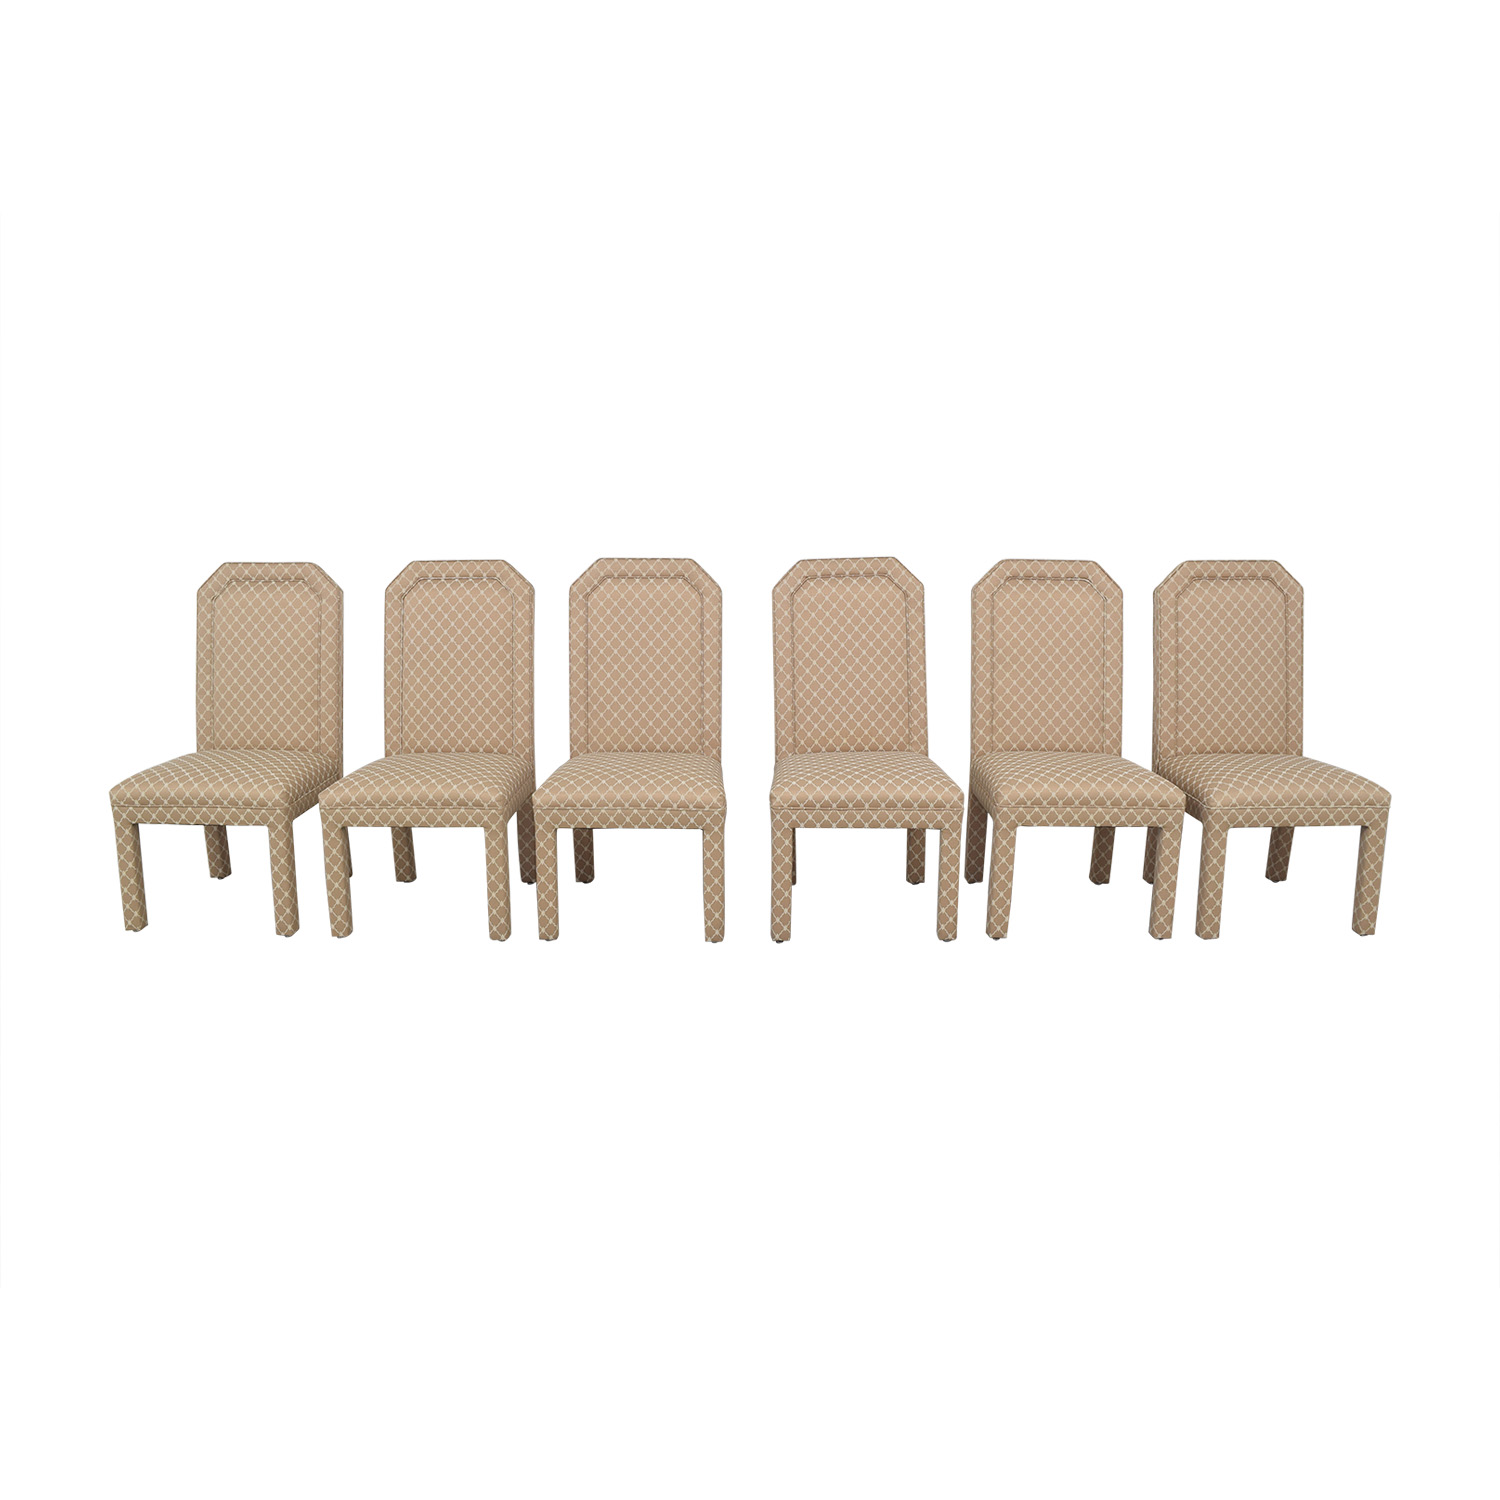 Dining chairs price